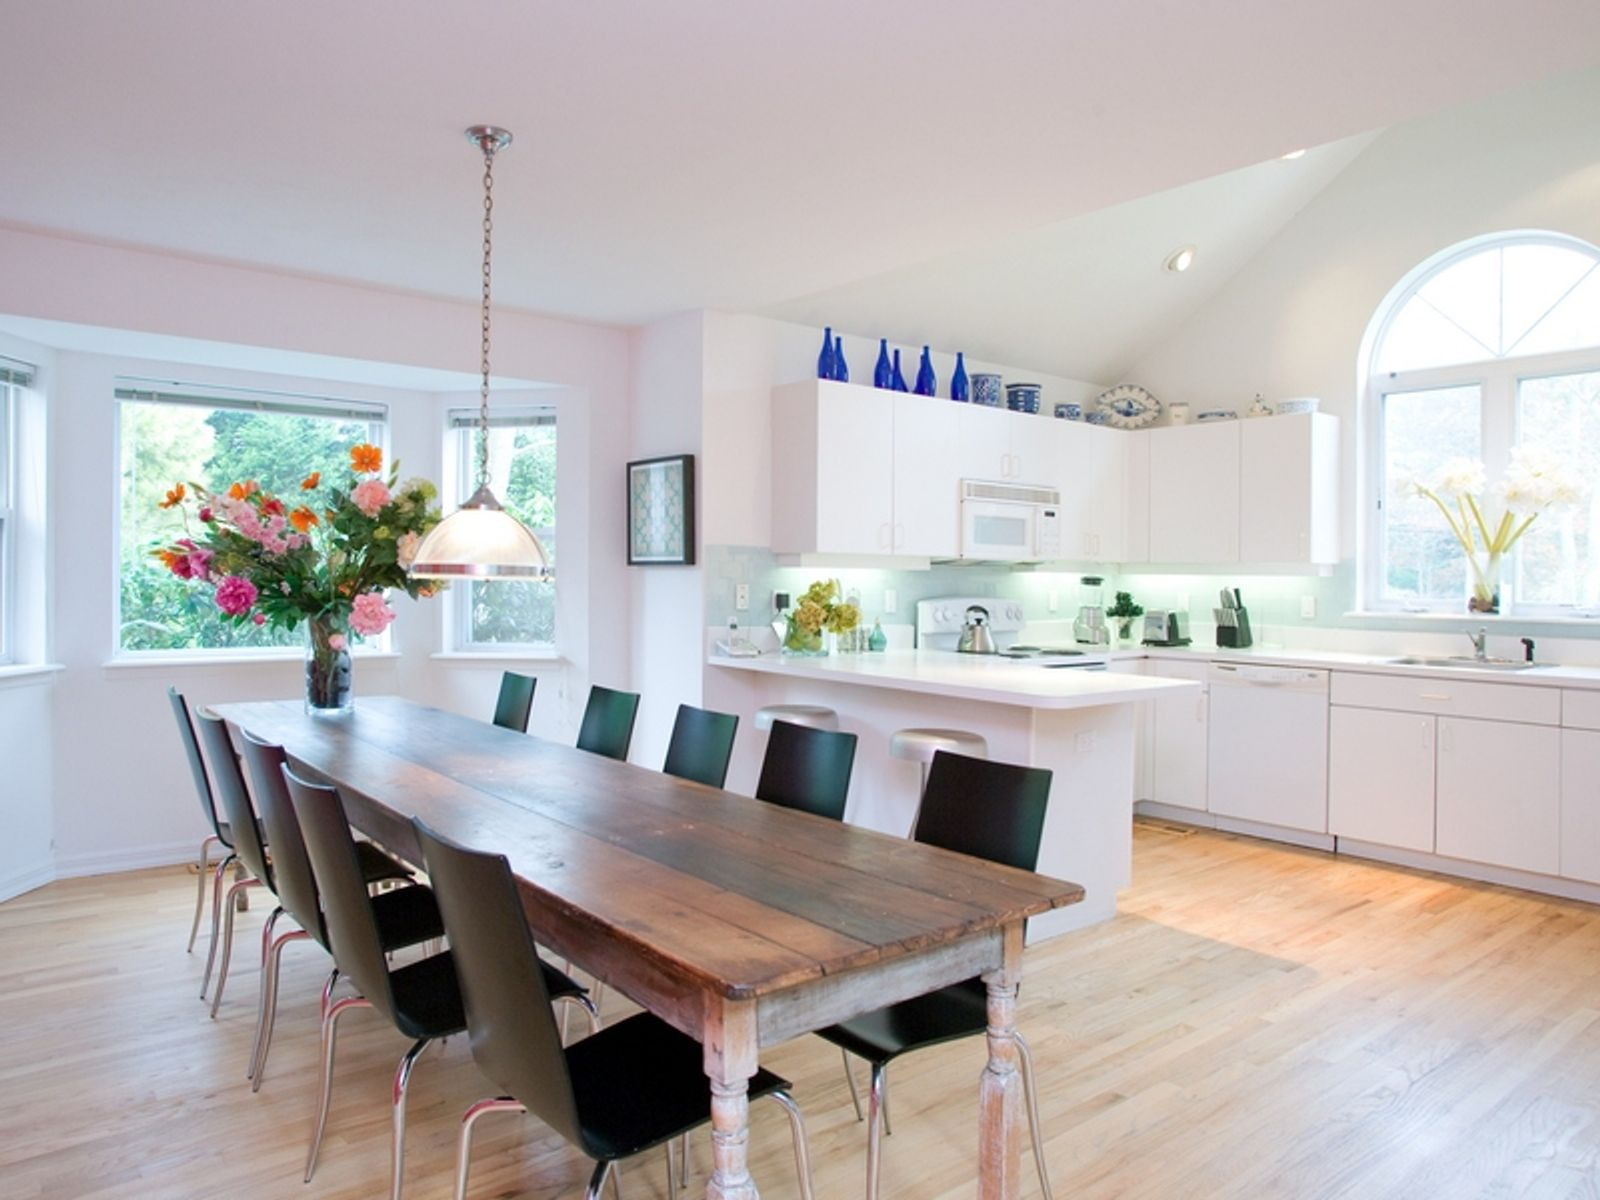 Location and Style in Wainscott